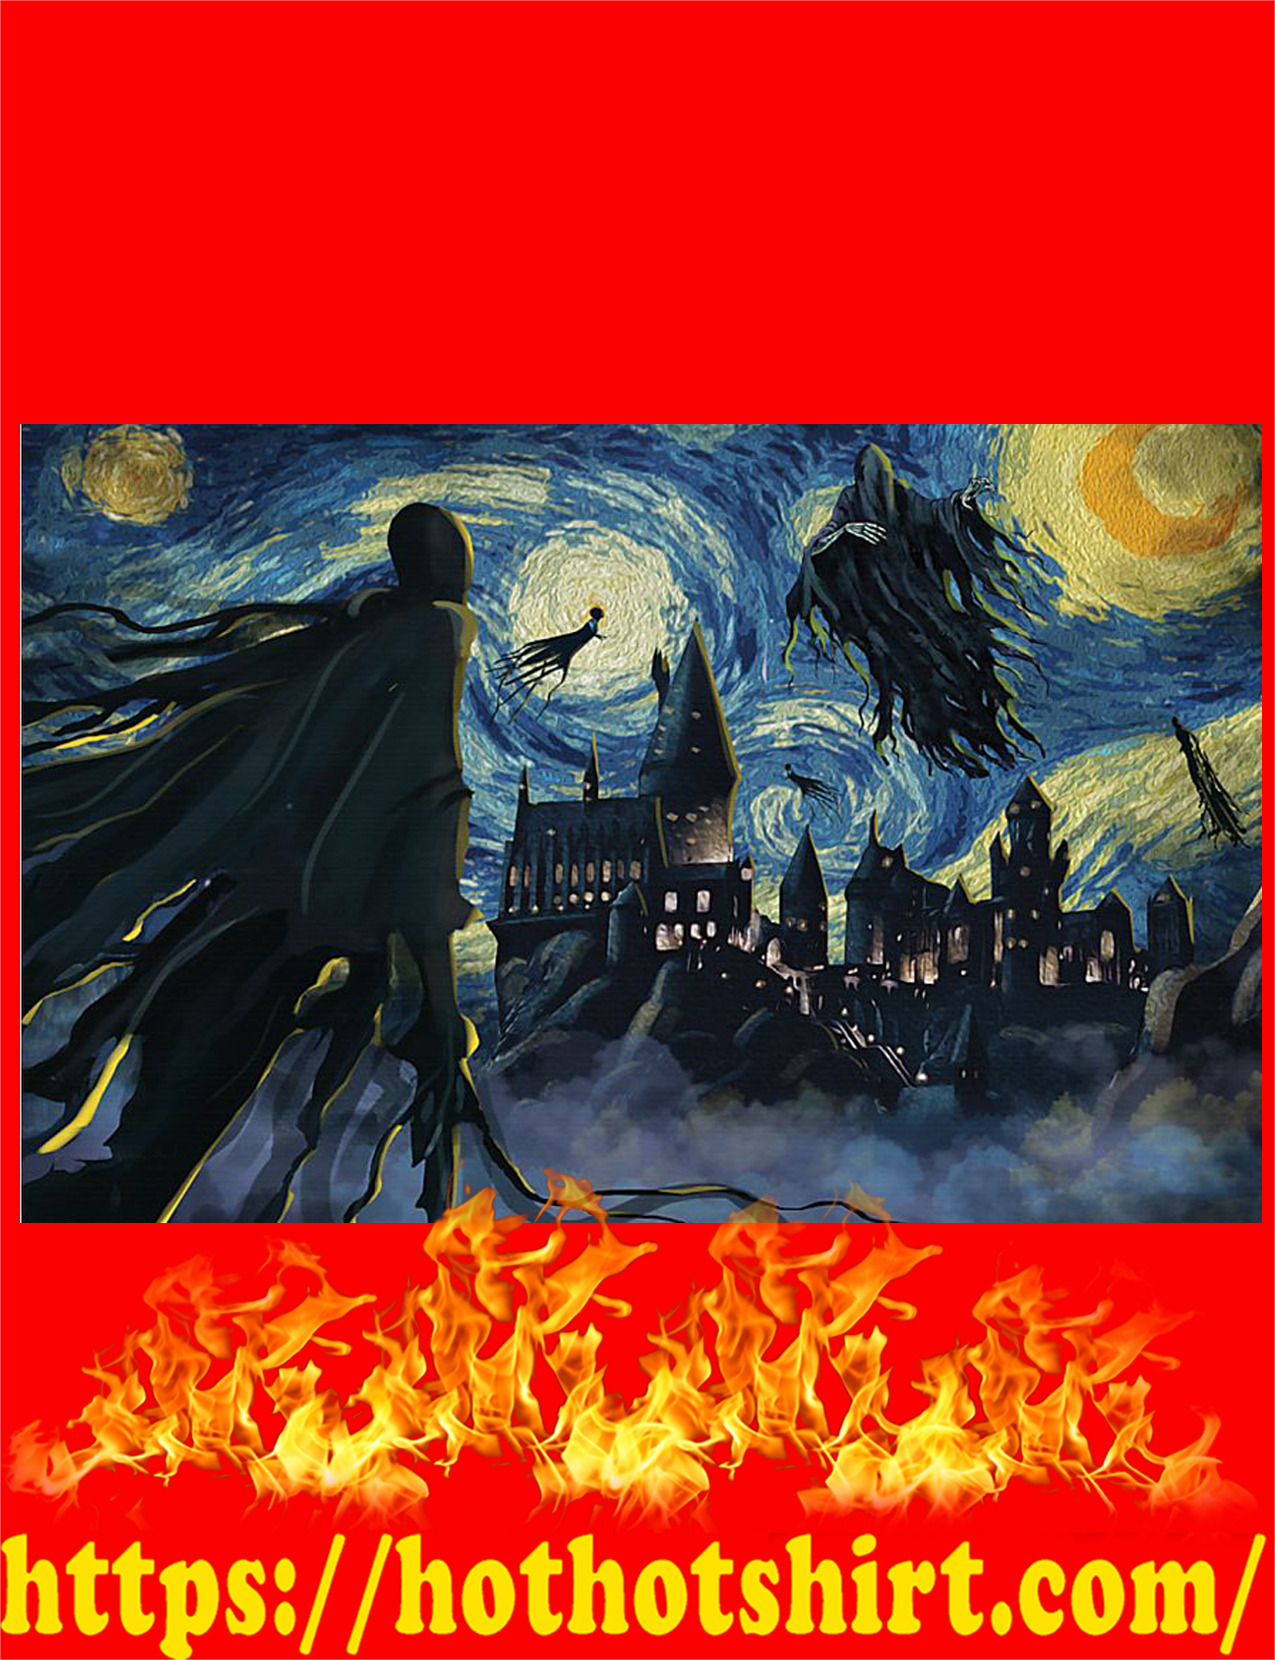 Dementor azkaban starry night poster 2